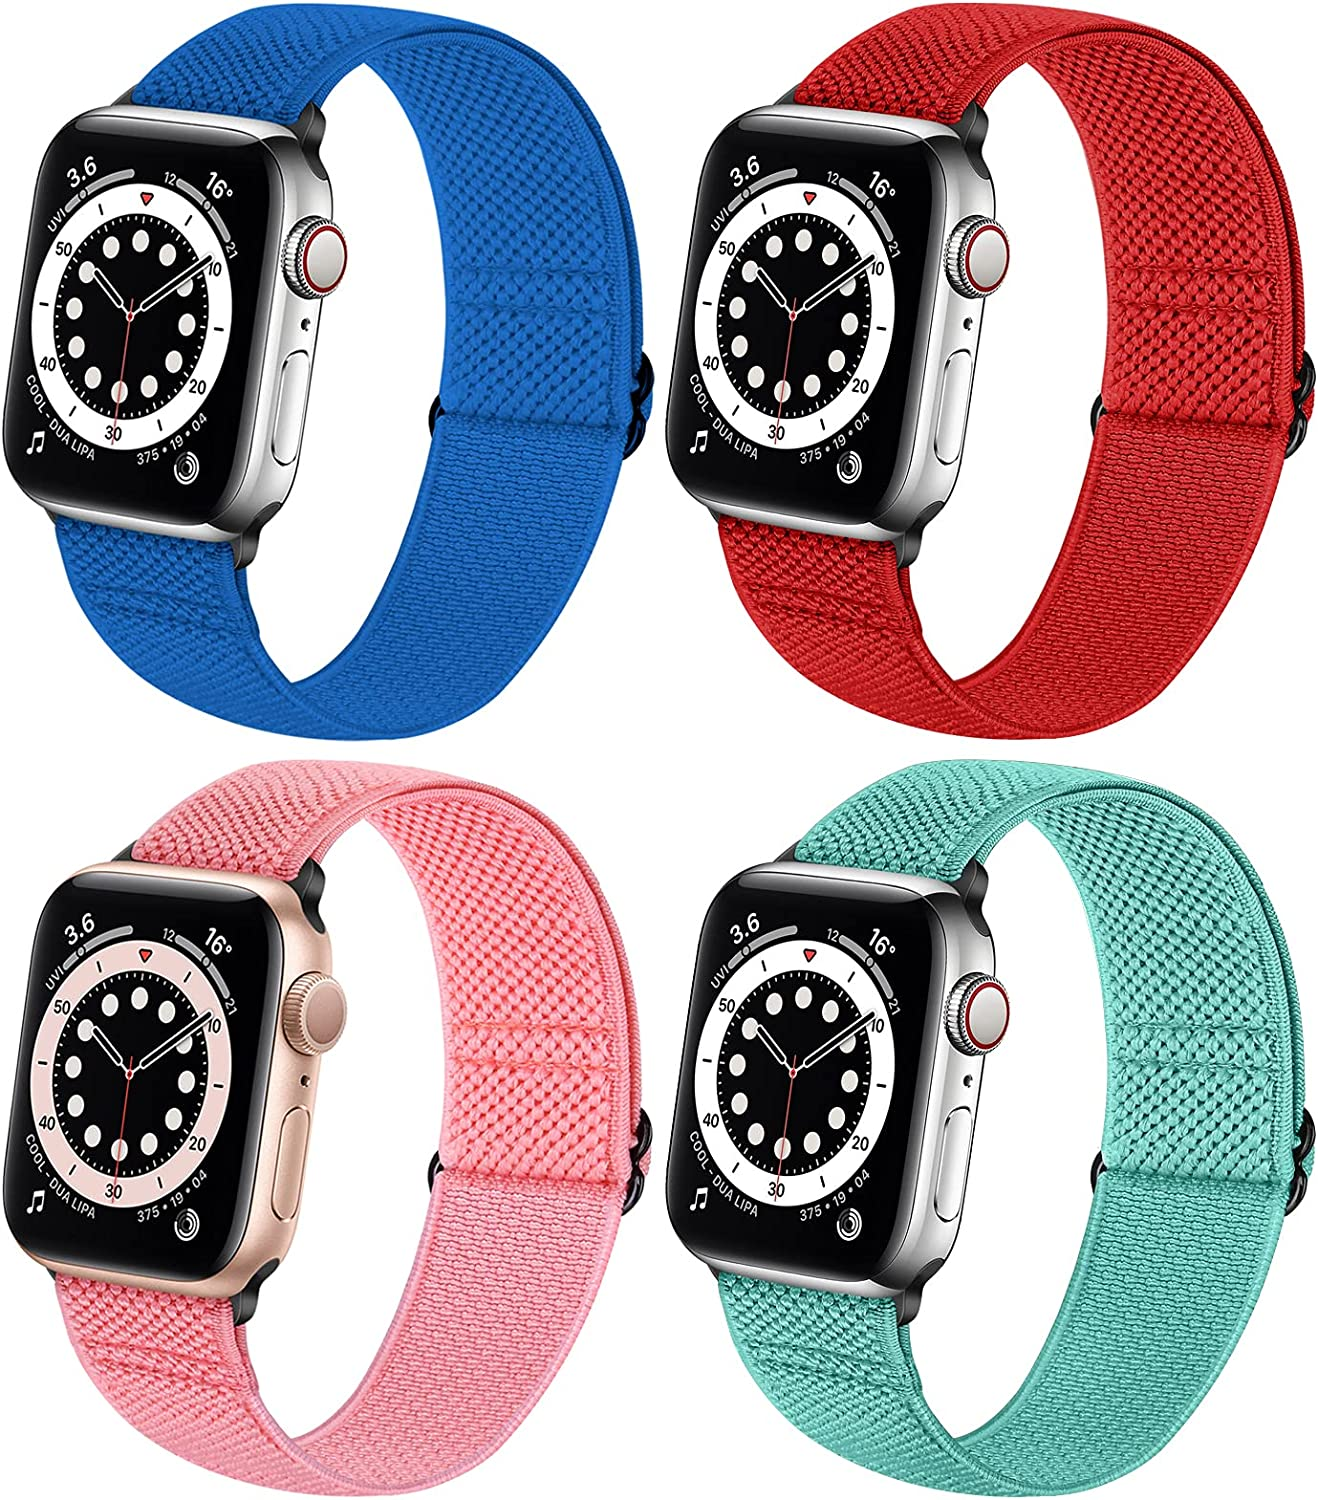 Neoxik Soft Nylon Braided Elastic Watch Bands Compatible with Apple Watch 38mm 40mm 42mm 44mm,Adjustable Sport Breathable Wrist Strap for iWatch Series 6 5 4 3 2 1 SE